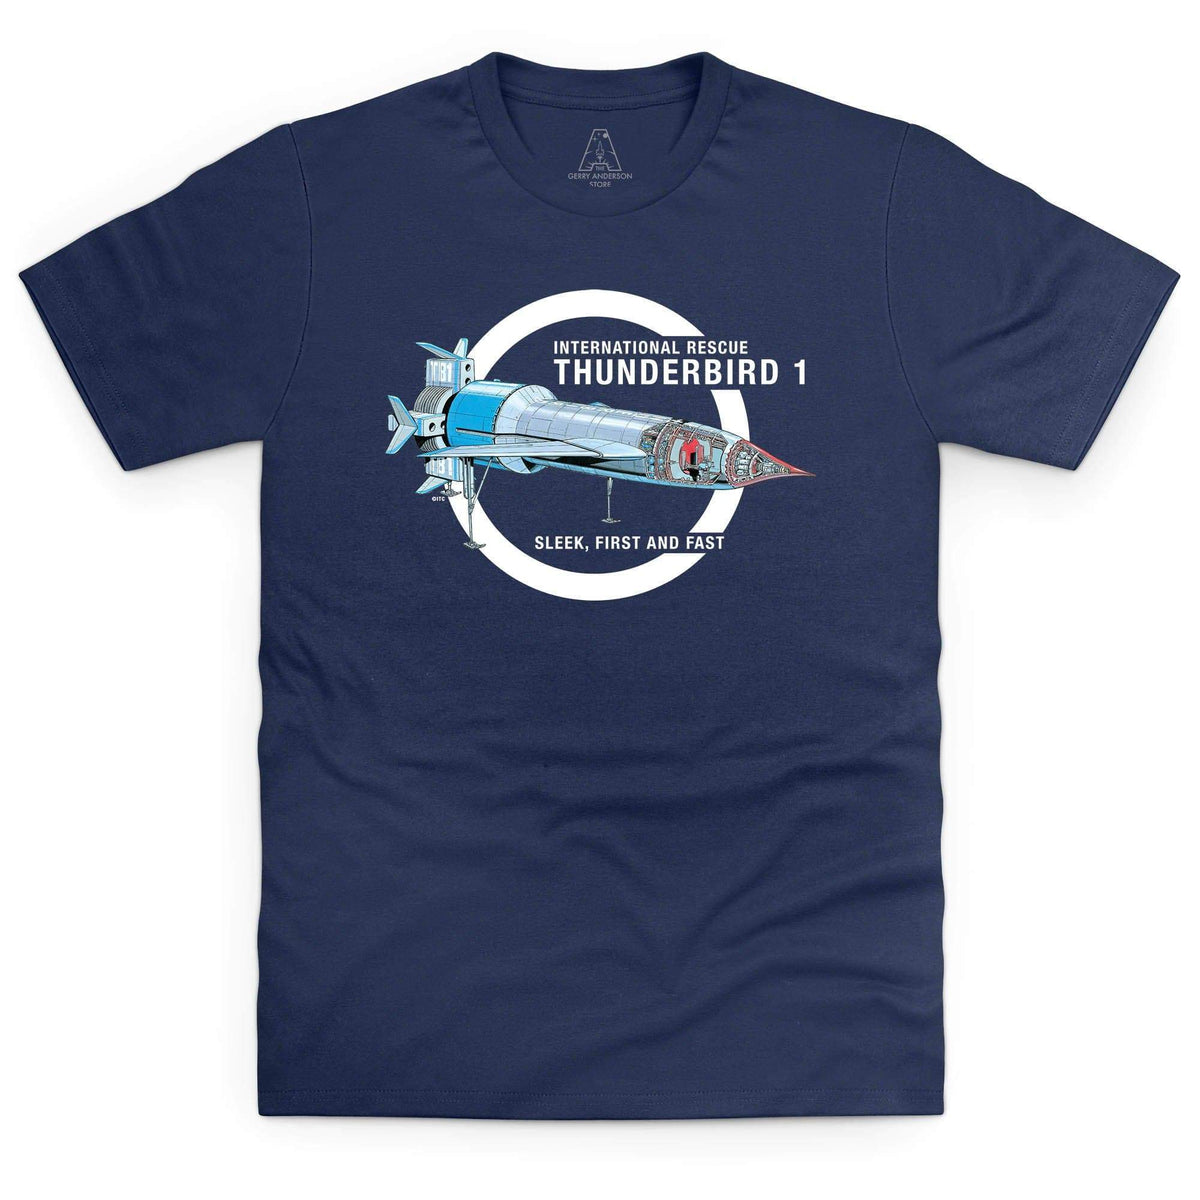 Thunderbirds: Thunderbird 1 Cutaway Men's T-Shirt [Official & Exclusive] - The Gerry Anderson Store